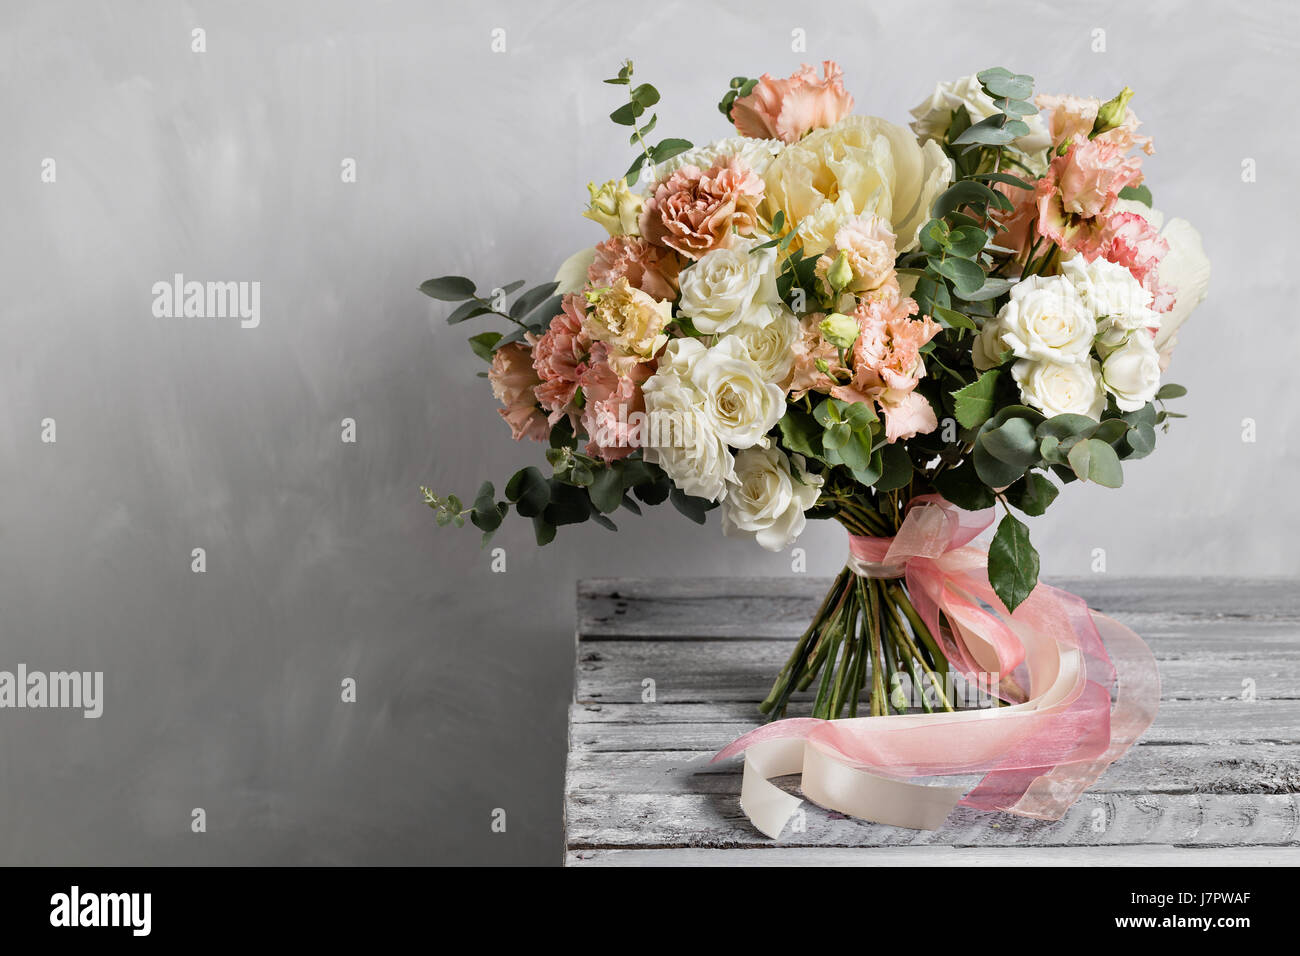 Vintage bouquet stock photos vintage bouquet stock images alamy bridal vintage bouquet the brides beautiful of mixed flowers and greenery decorated with izmirmasajfo